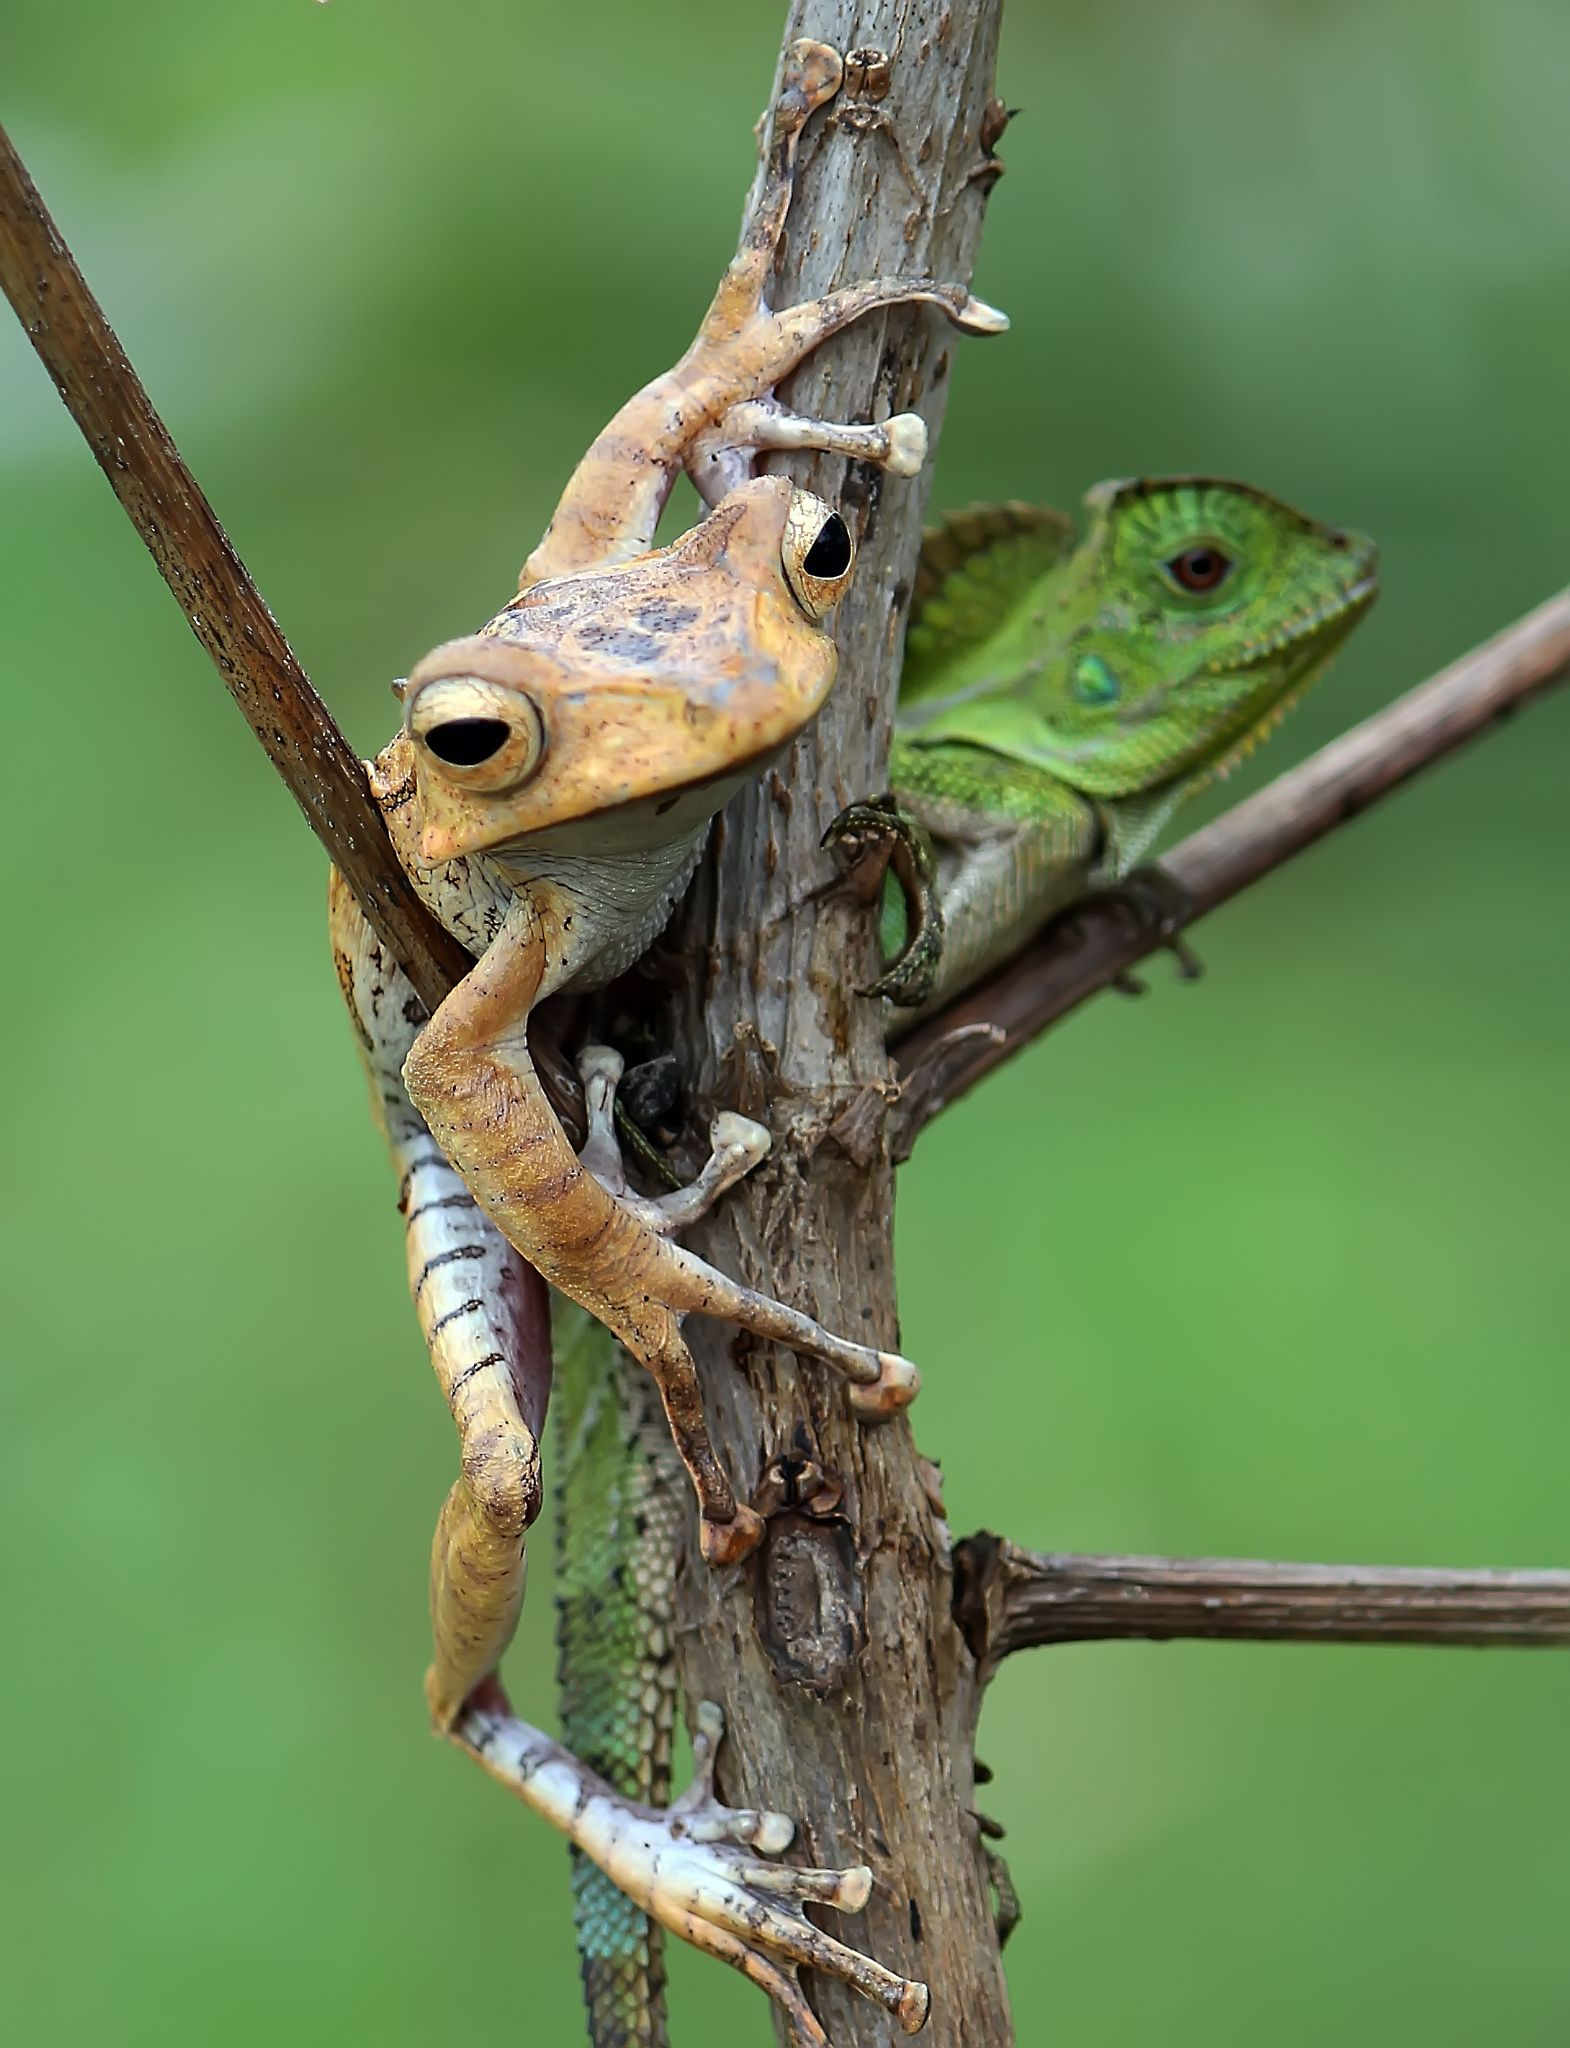 Frog And Lizard In Harmony By Sfipul With Images